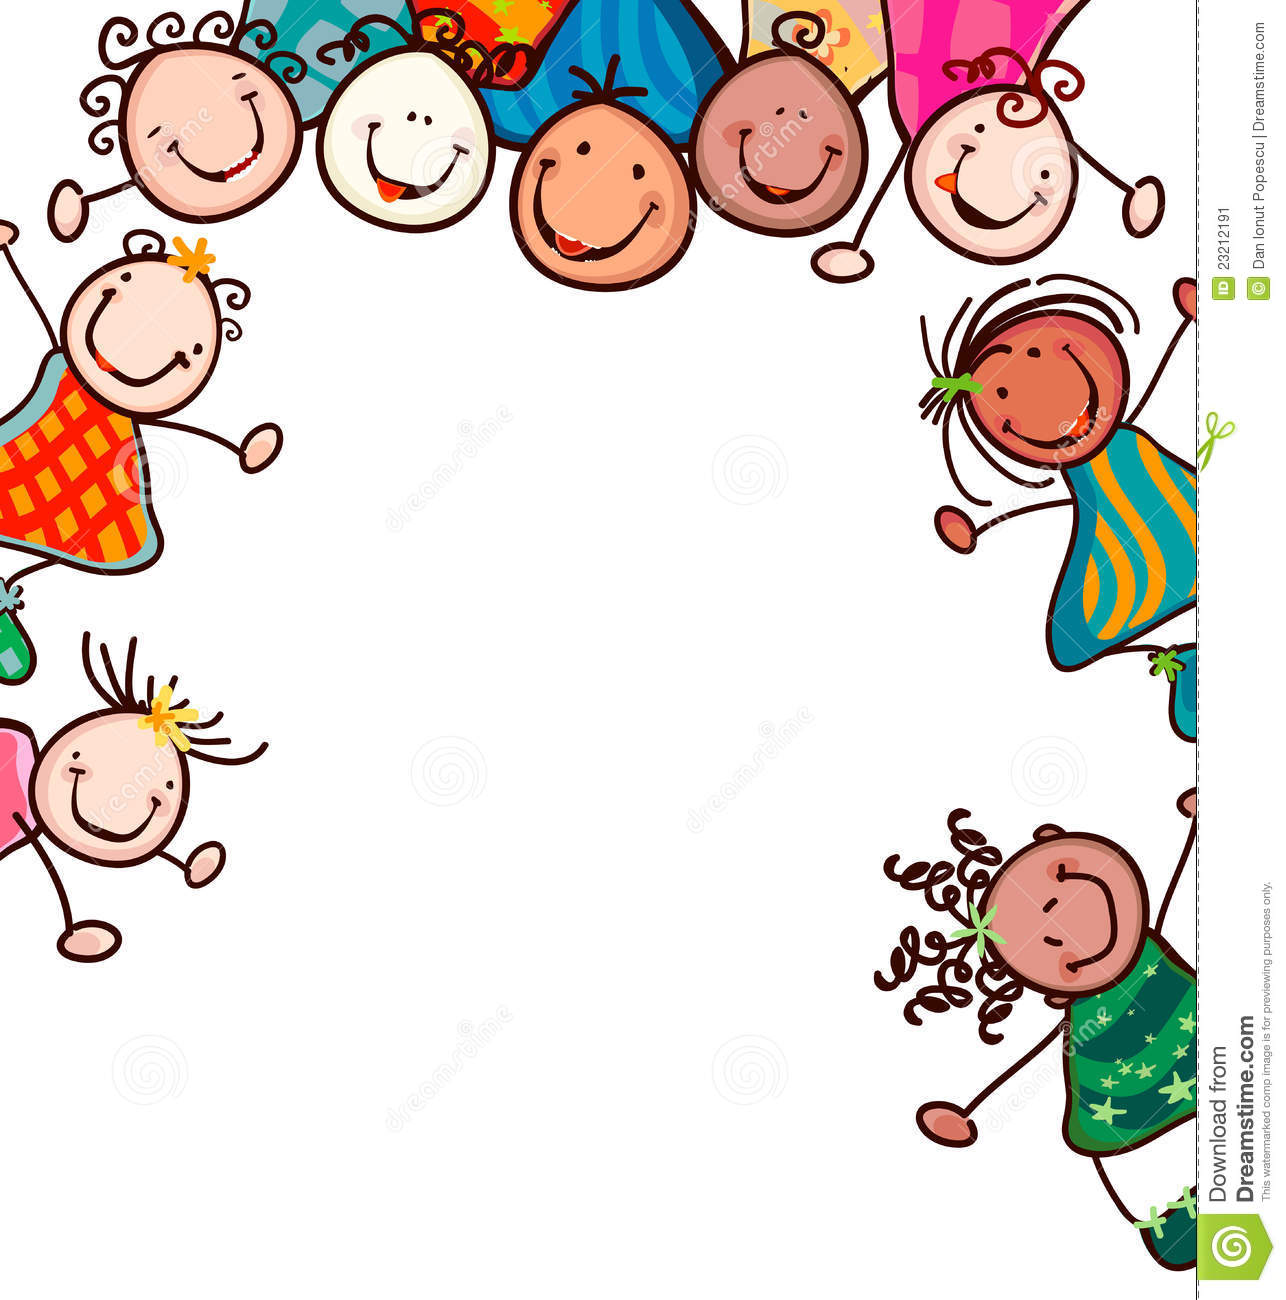 1286x1300 Kids Smiling Stock Image